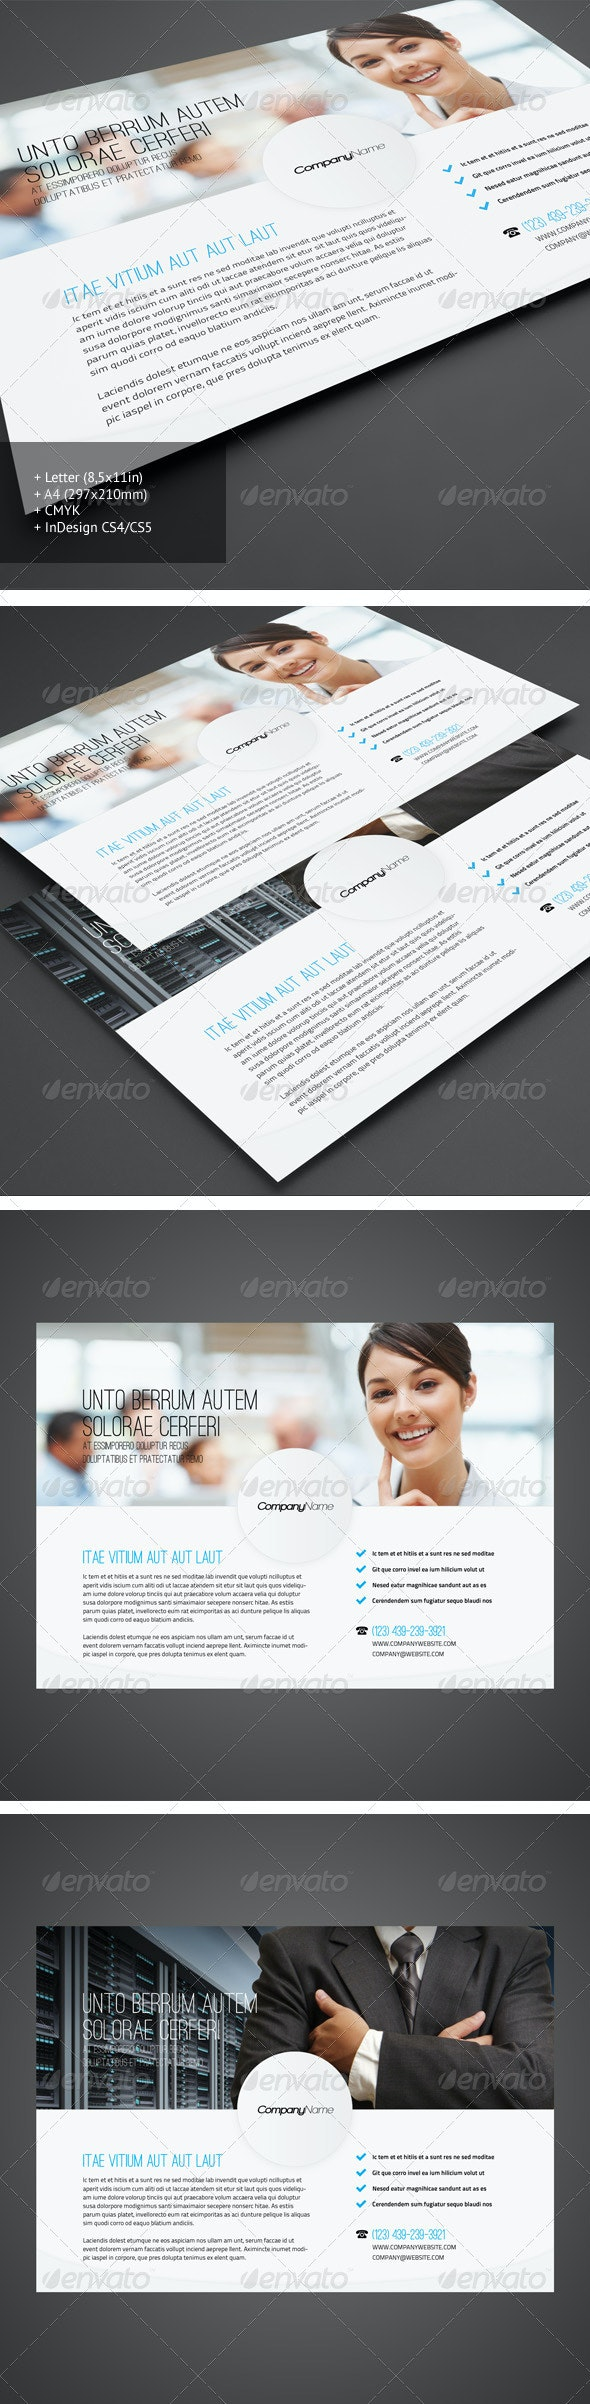 Corporate Flyer 2 - Corporate Flyers